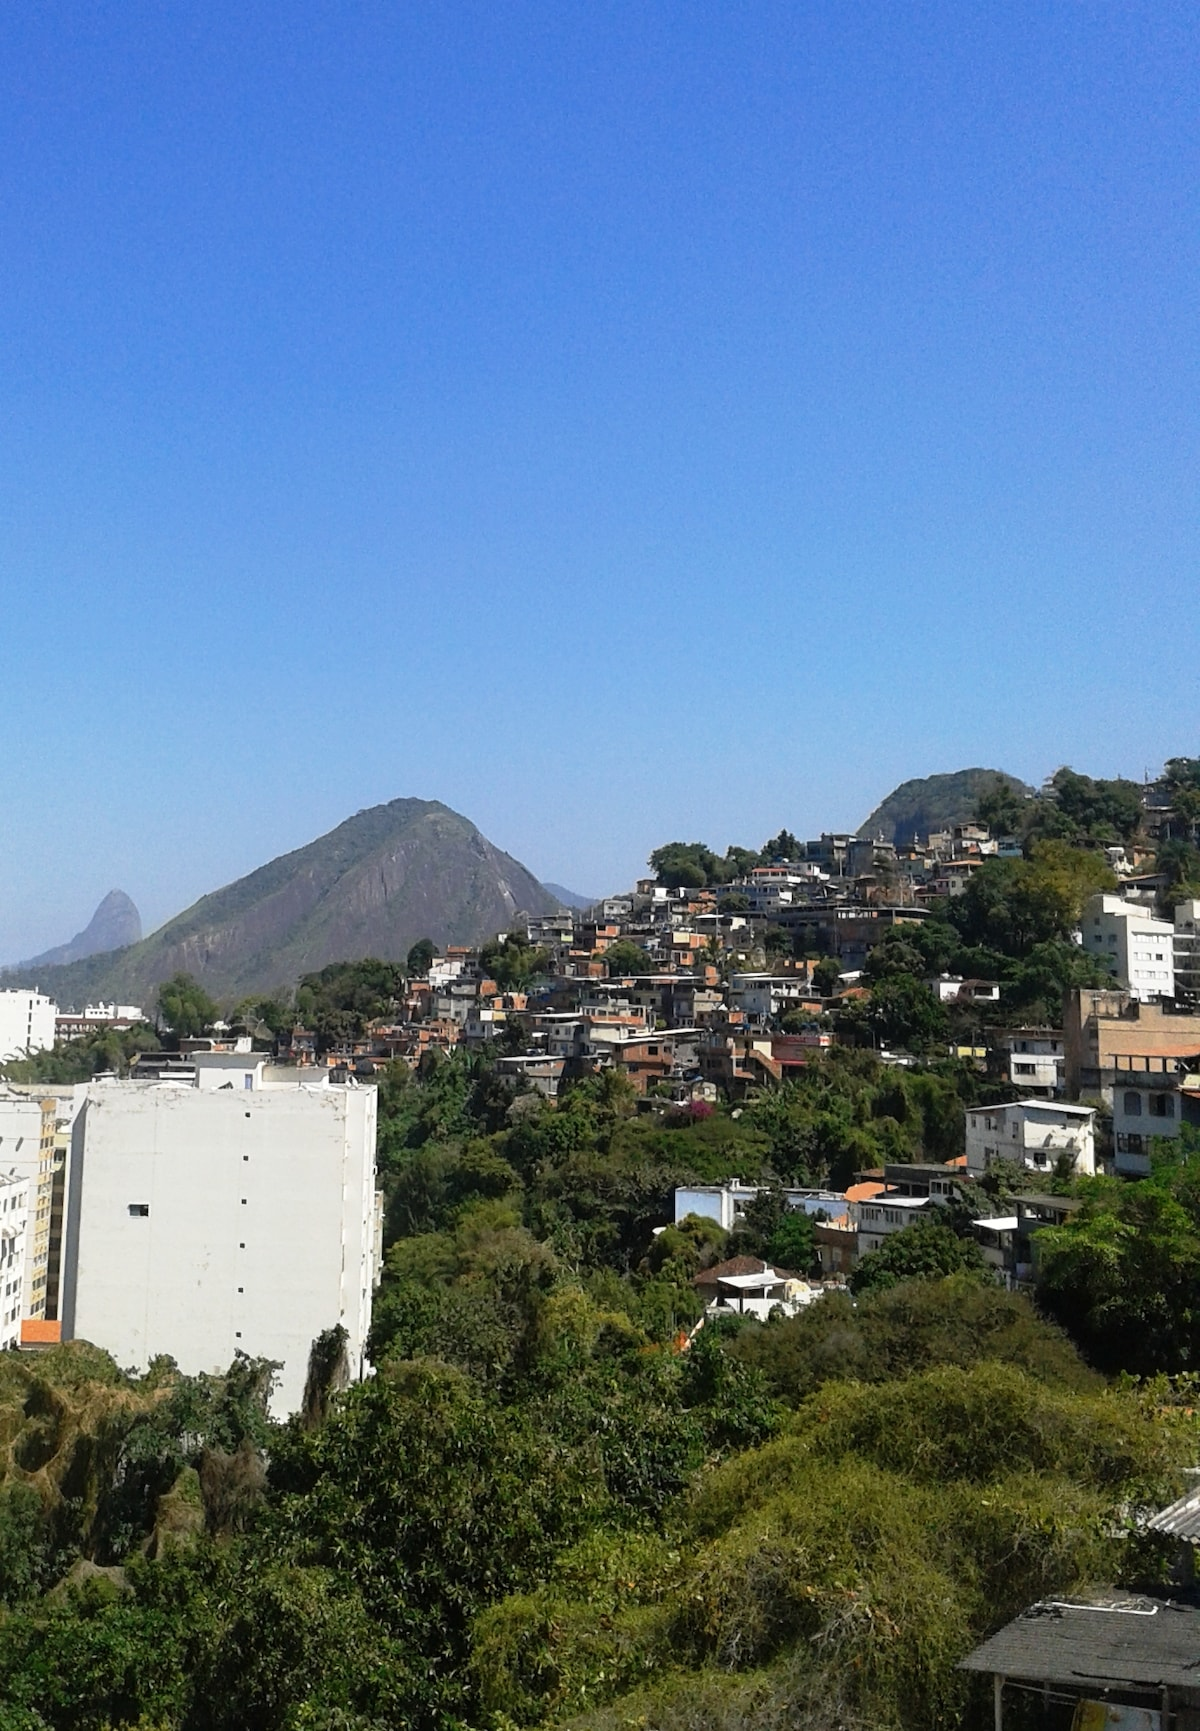 Come and have a great favela experience